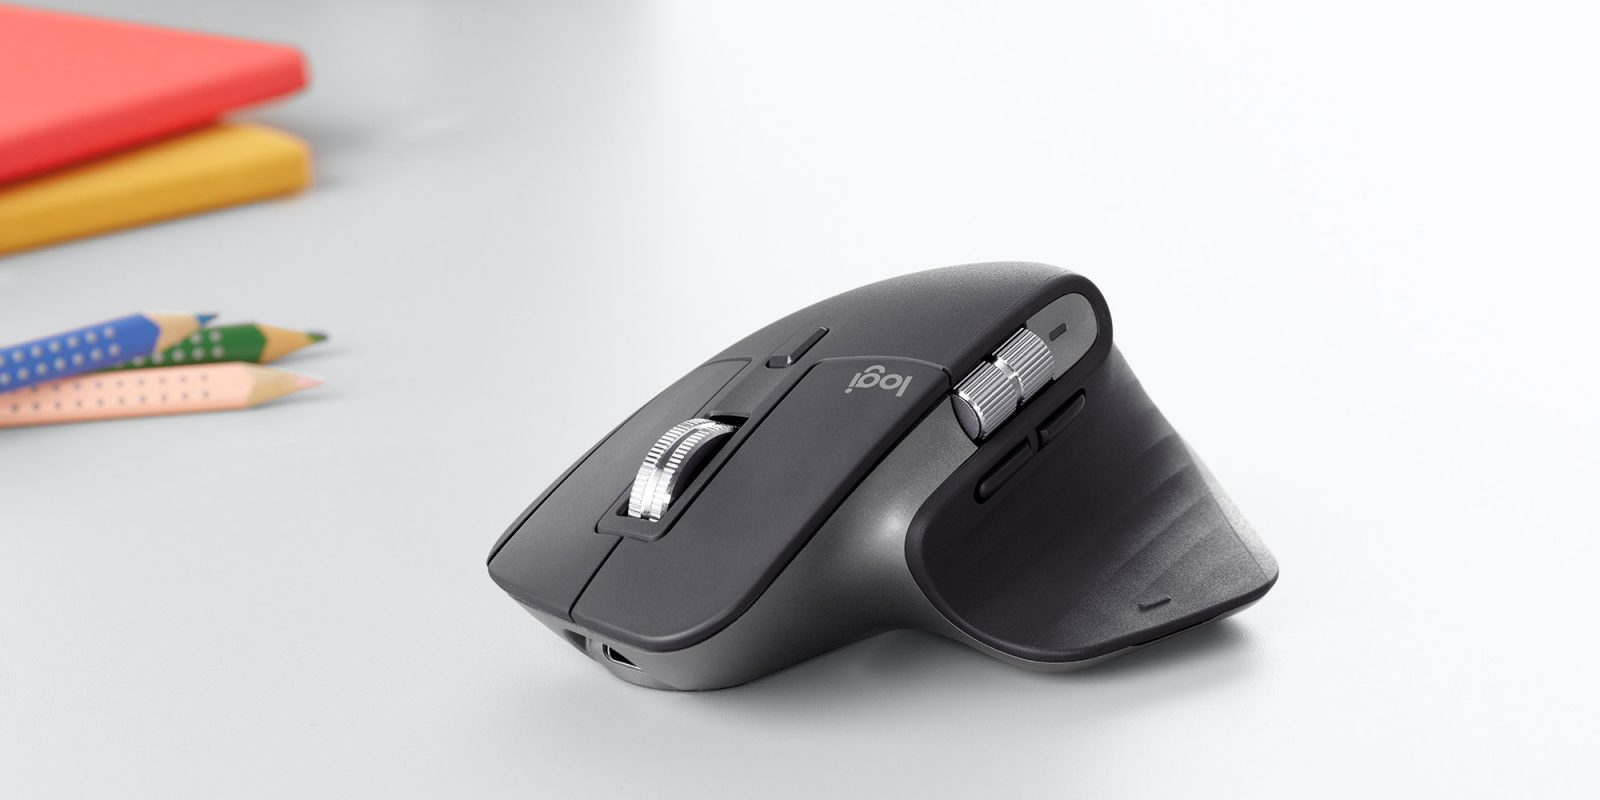 Score Logitech's MX Master 3 Advanced Mouse for a new low of $80 (20% off)